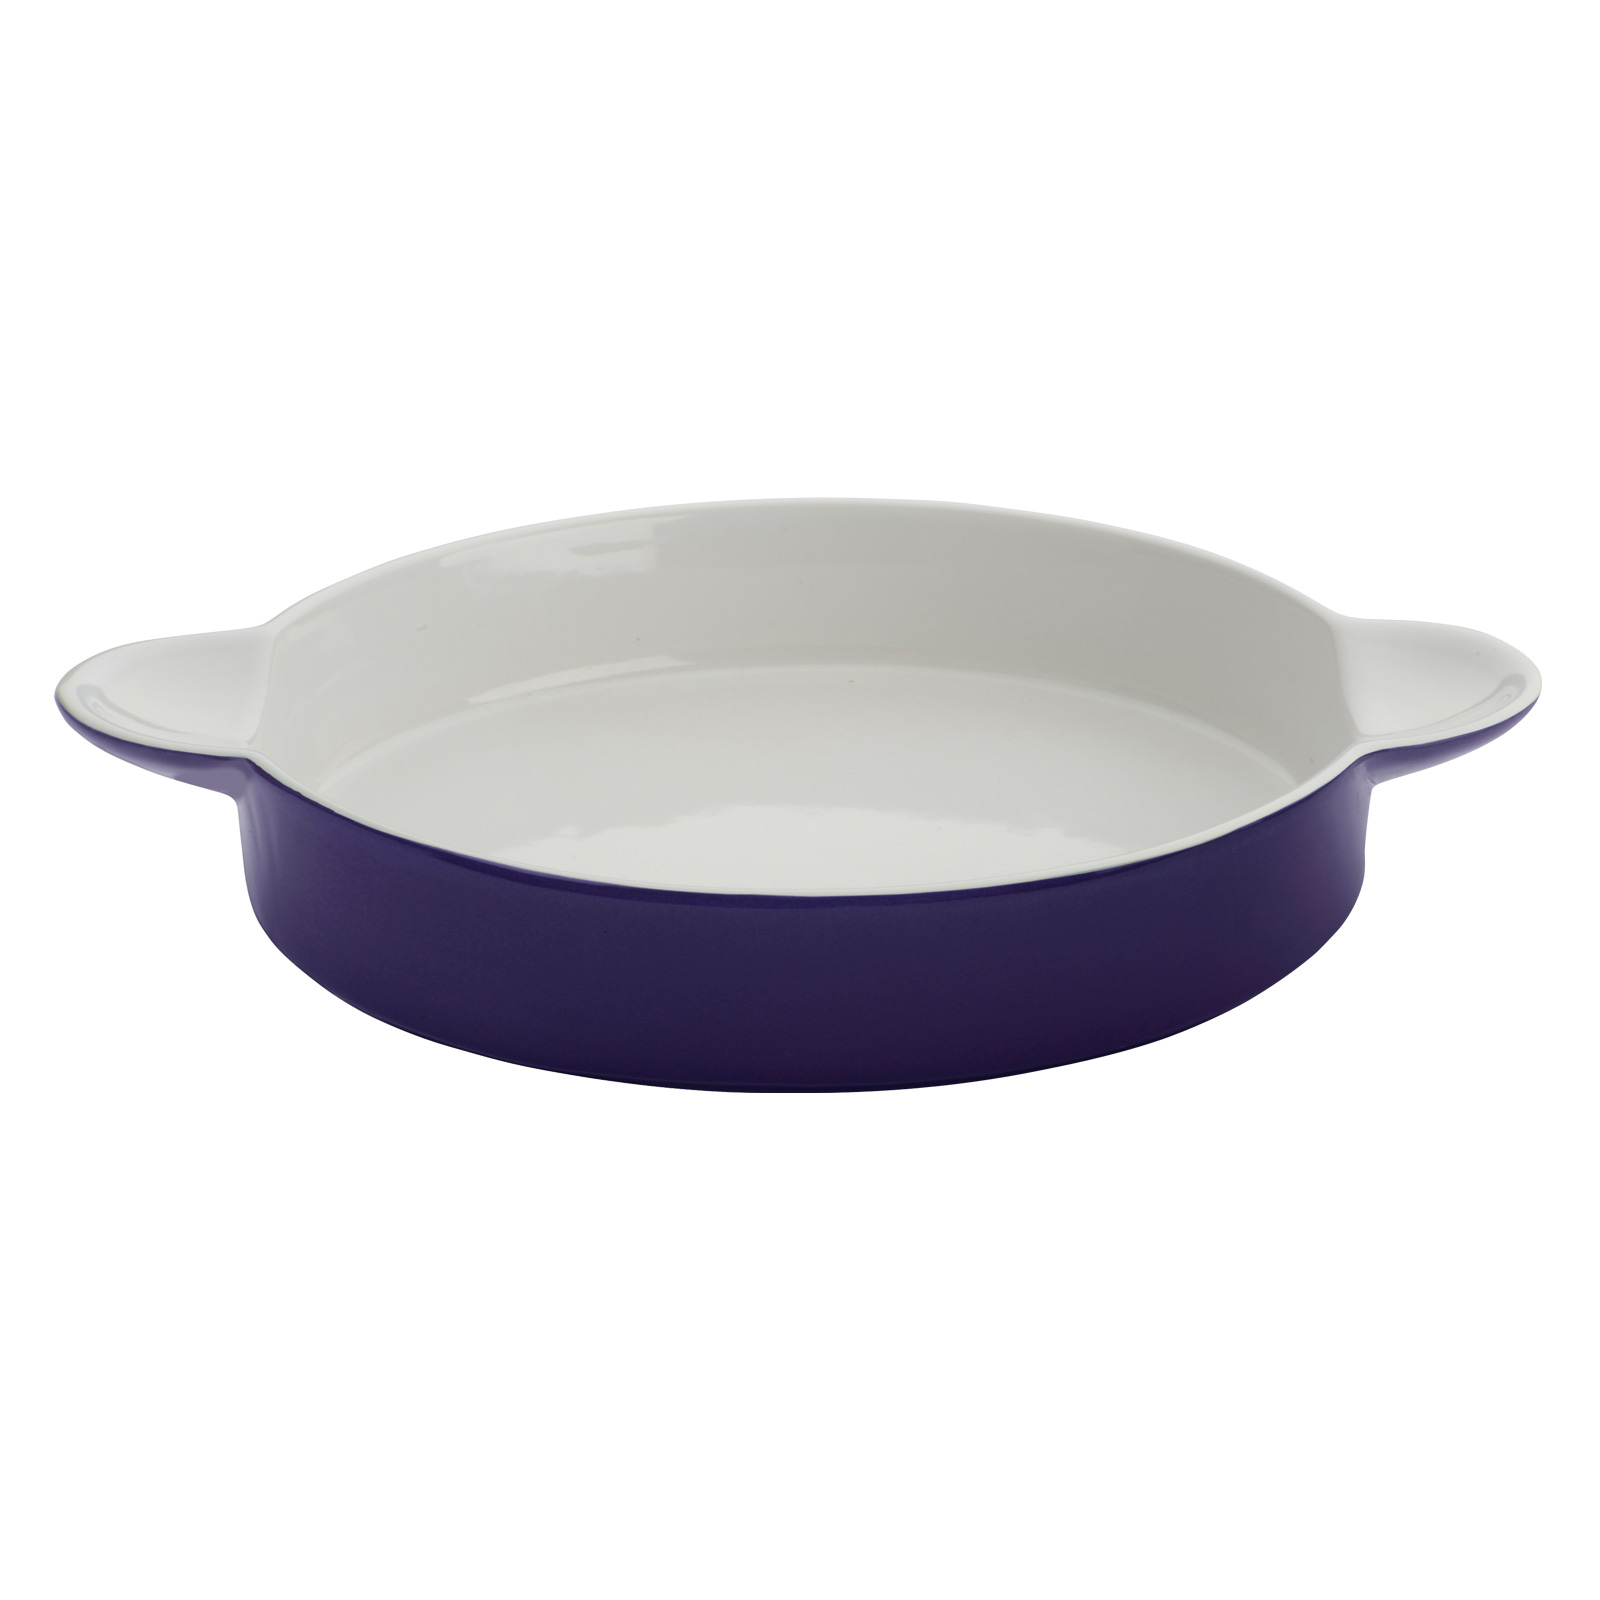 SCOOP! Flan Dish Purple by BIA